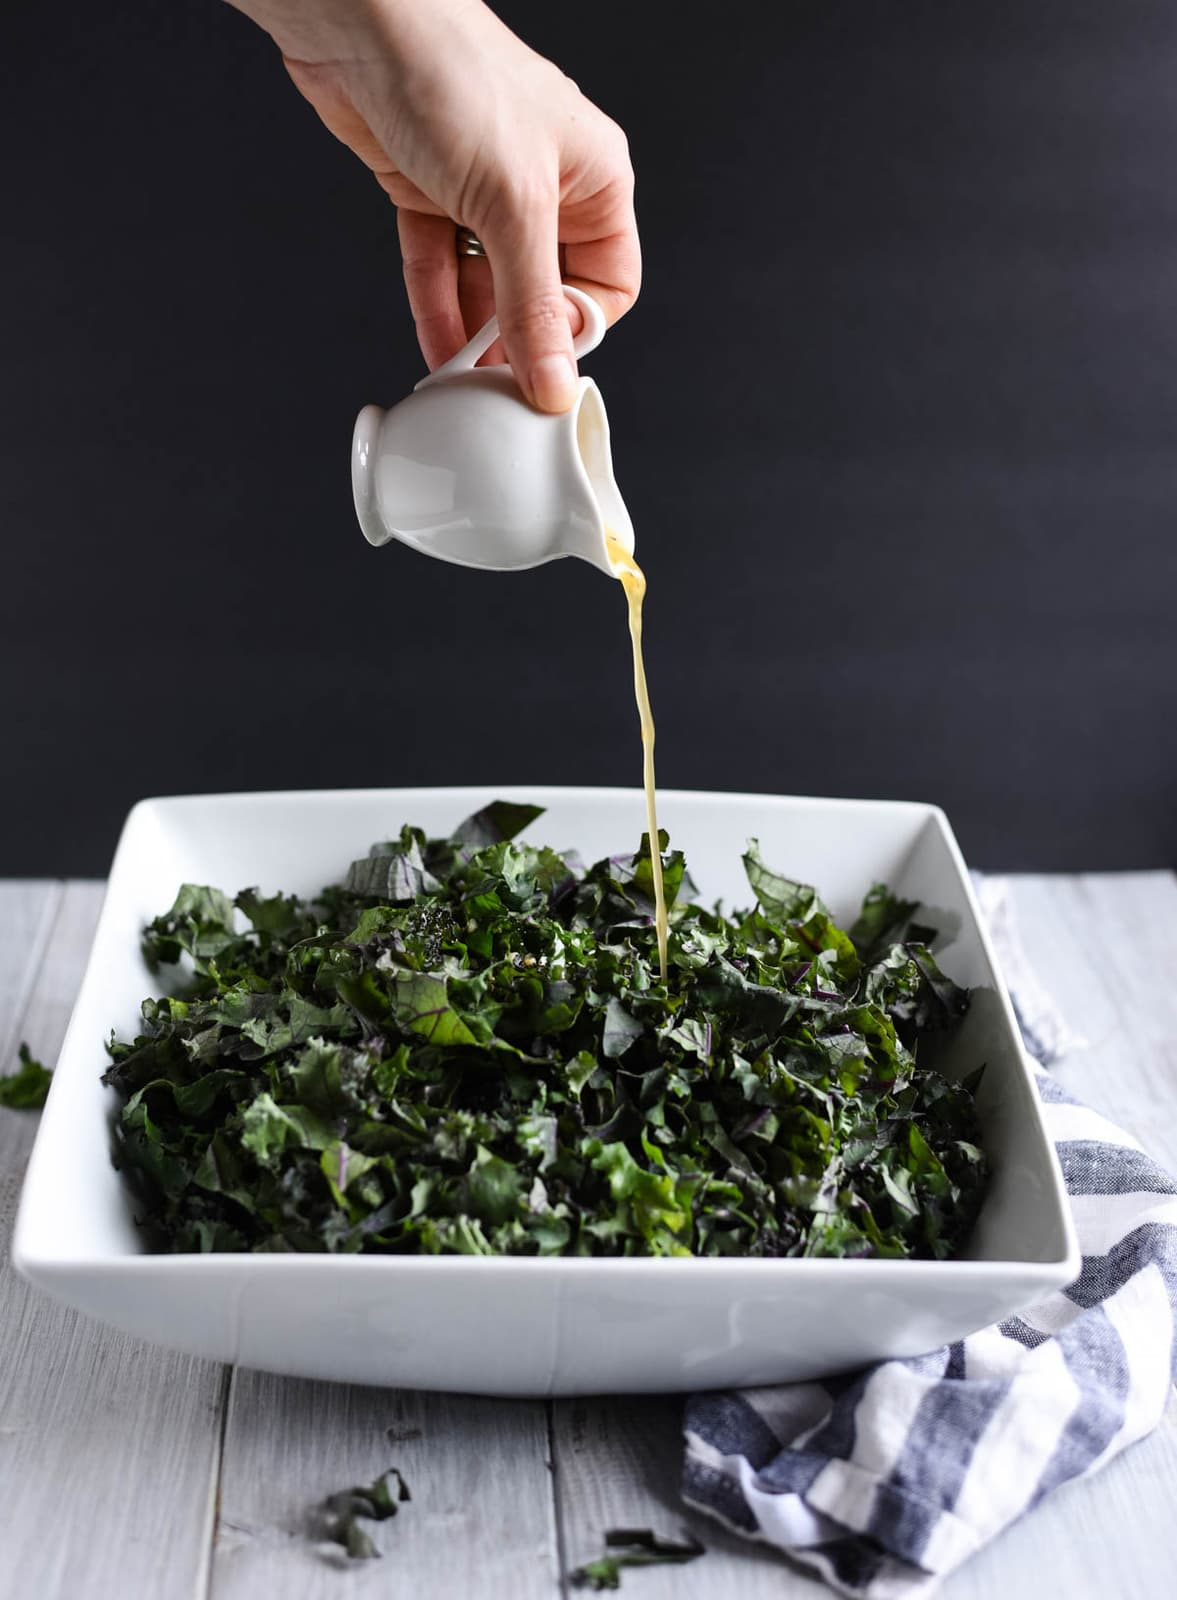 Dressing being drizzled onto kale salad